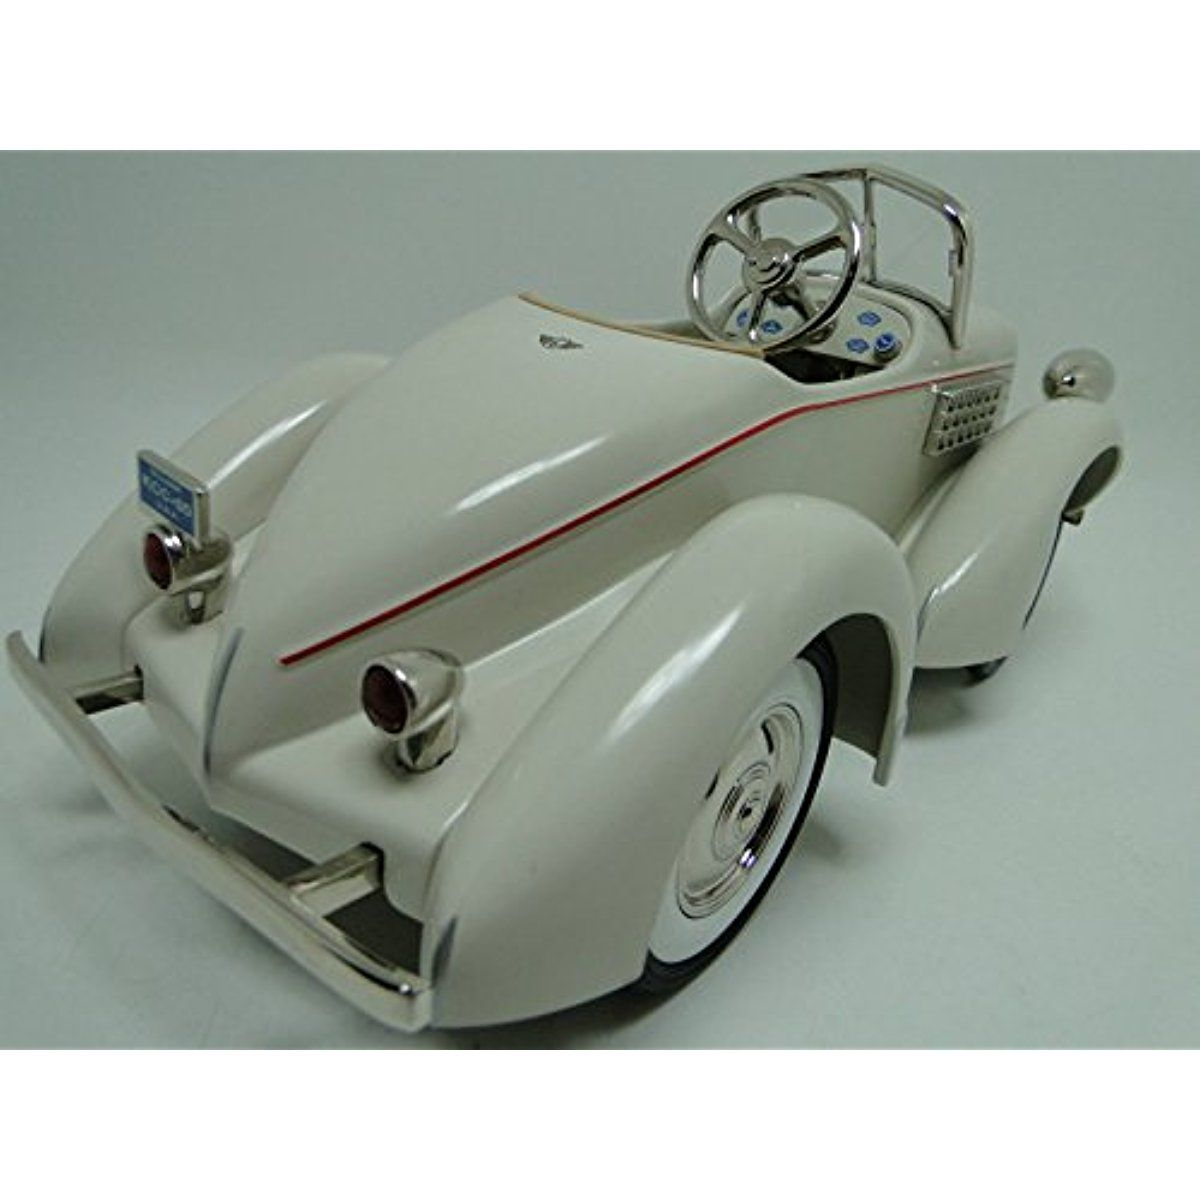 Amazon.com: Buying Choices: High End Collector Pedal Car Vintage ...